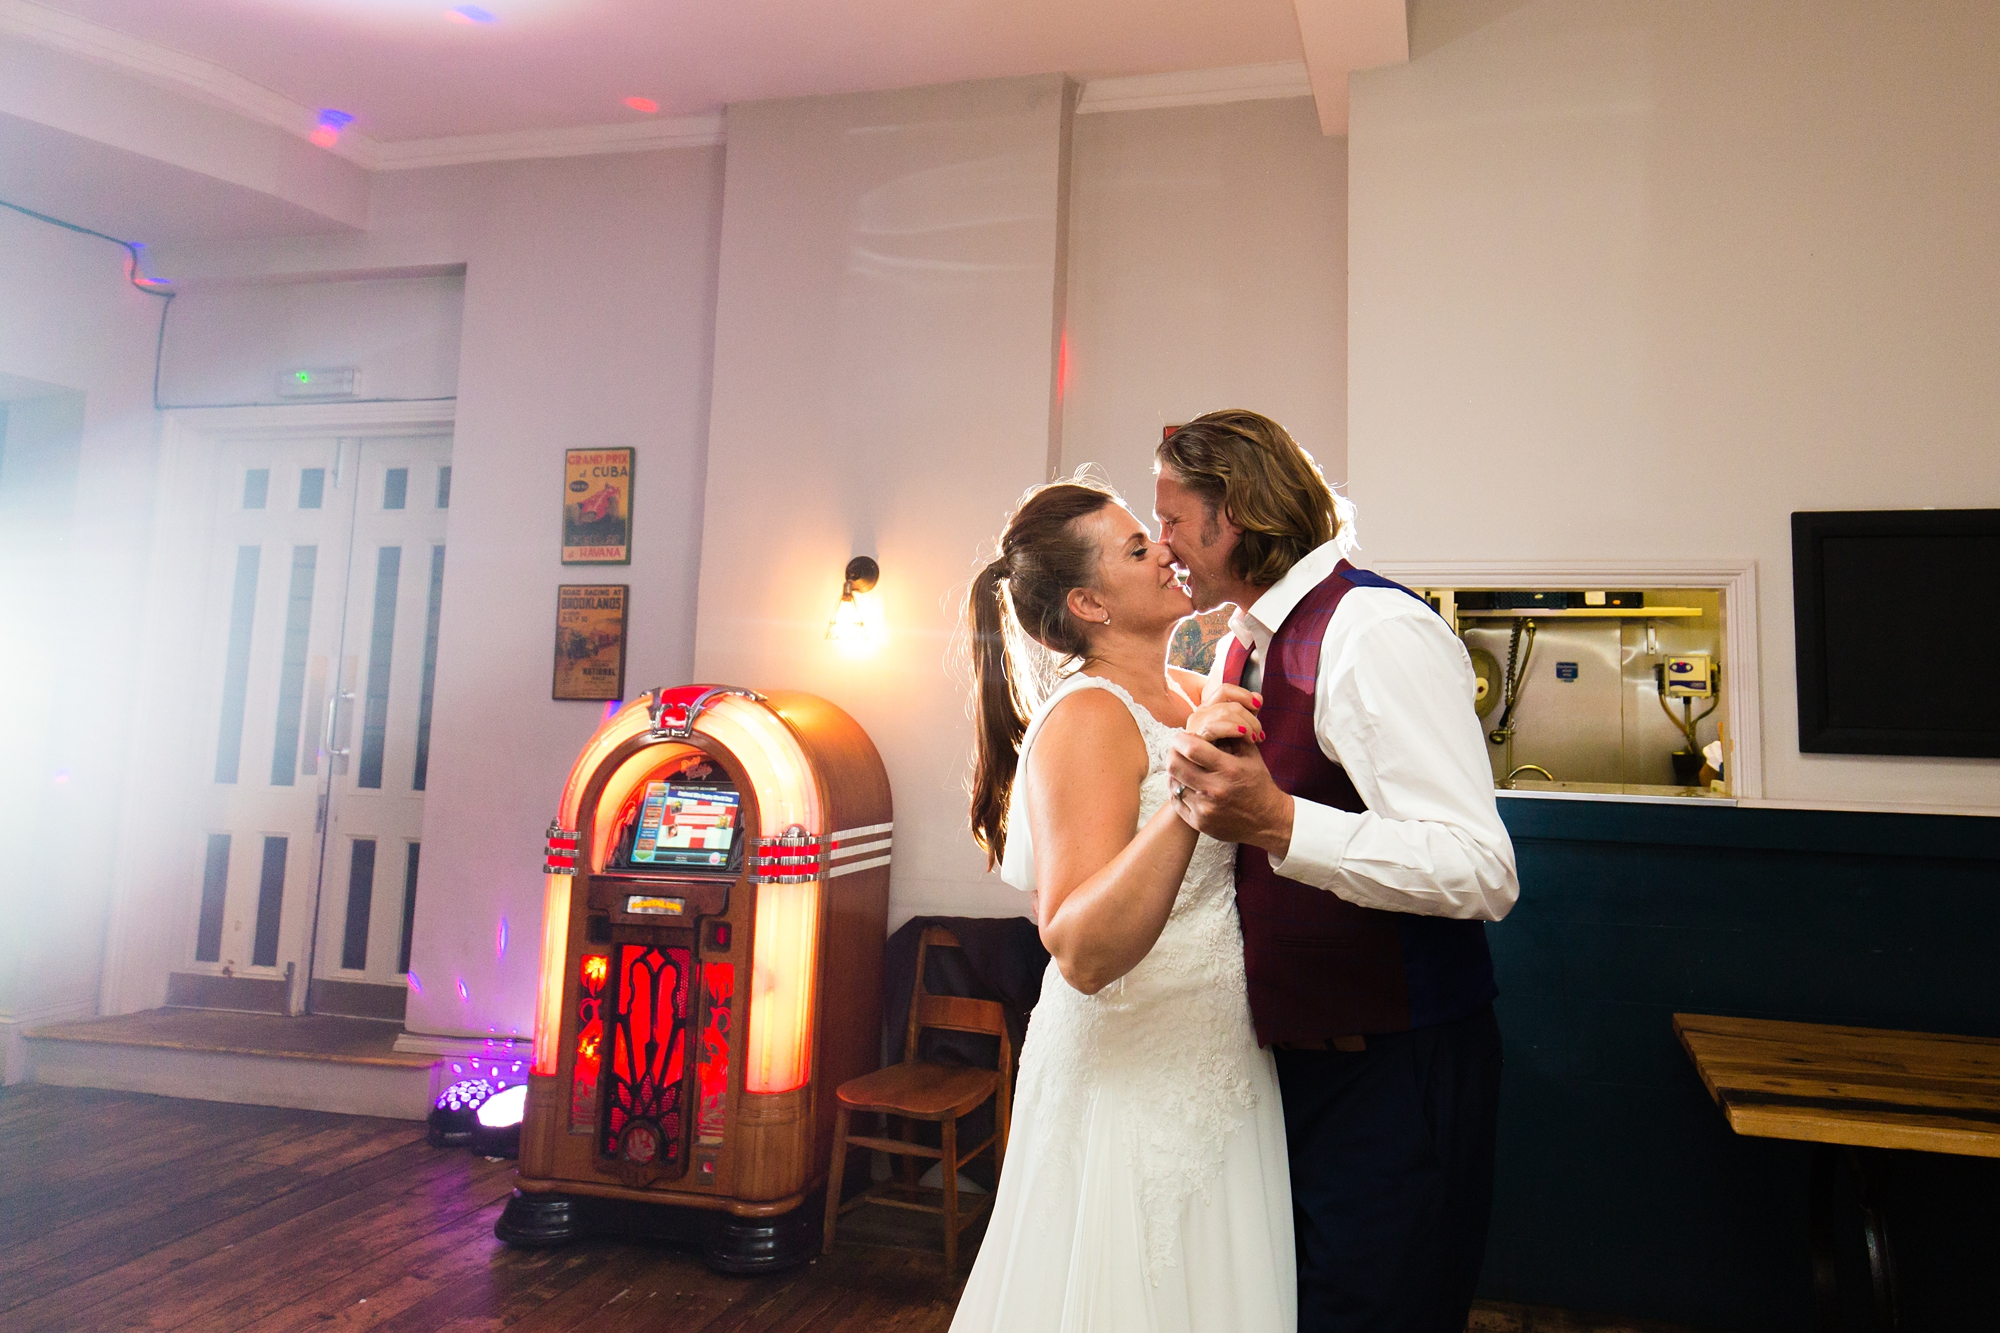 First dance in front of vintage juke box